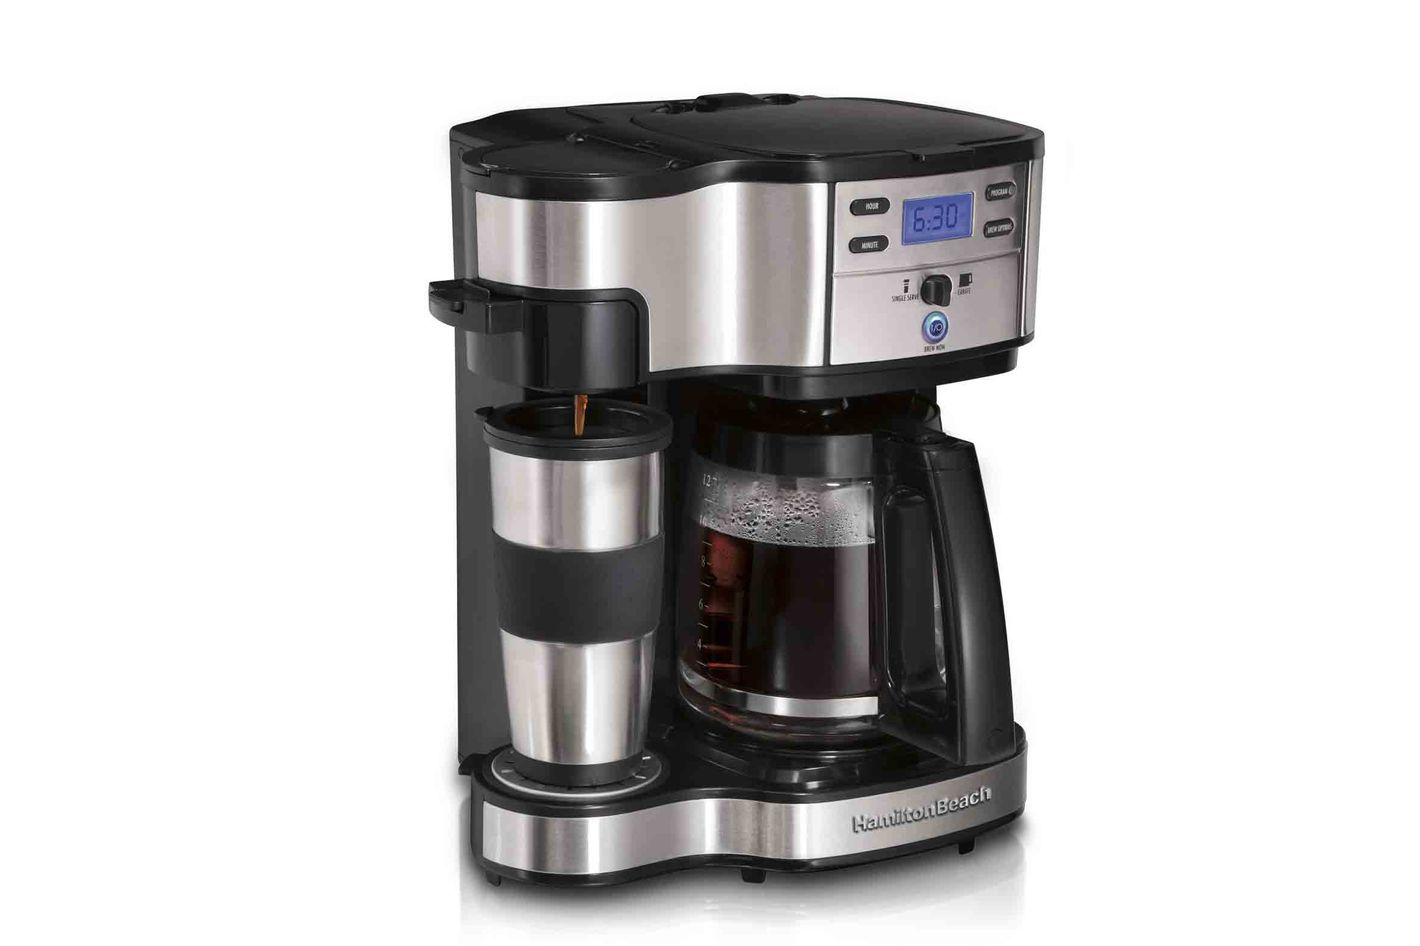 Hamilton Beach 49980a Single Serve Coffee Brewer And Full Pot Maker